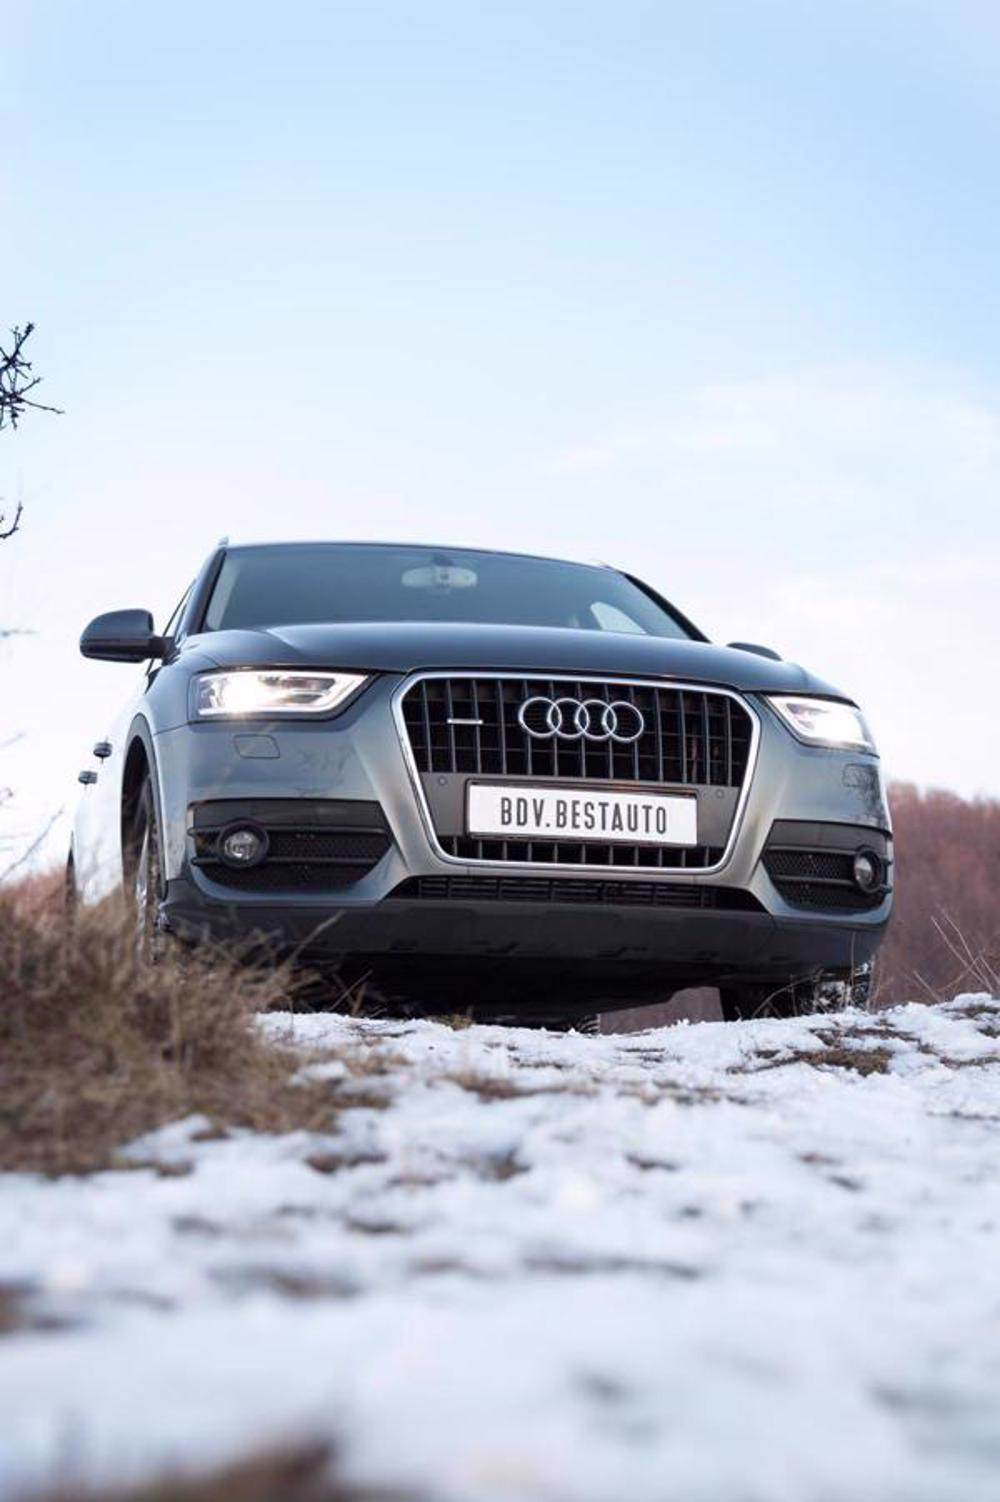 Quattro, the best traction ever invented?